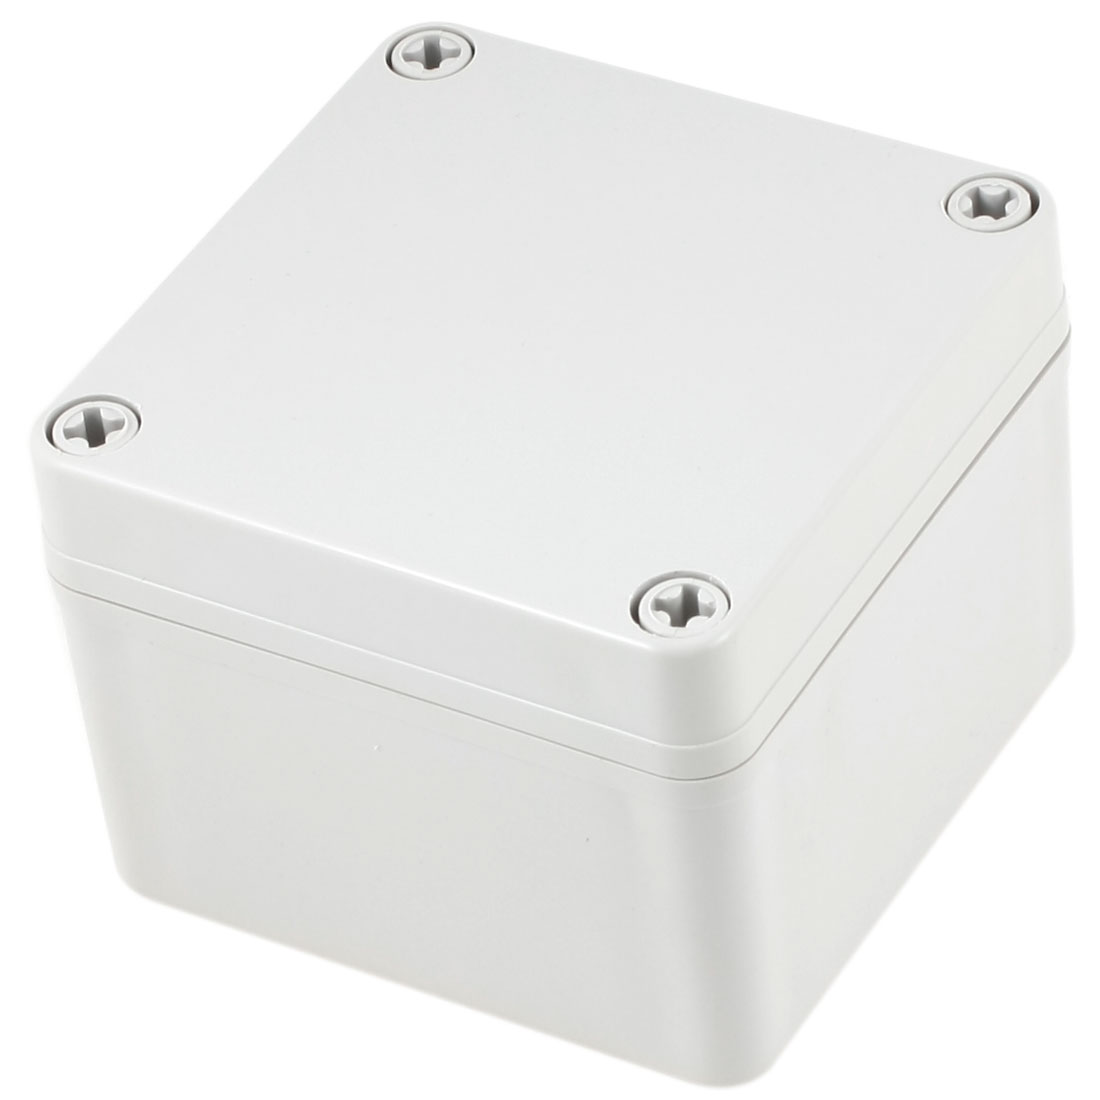 Rectangle Dustproof IP65 Plastic Sealed Power Junction Enclose Box Power Protection Case 100mm x 100mm x 75mm